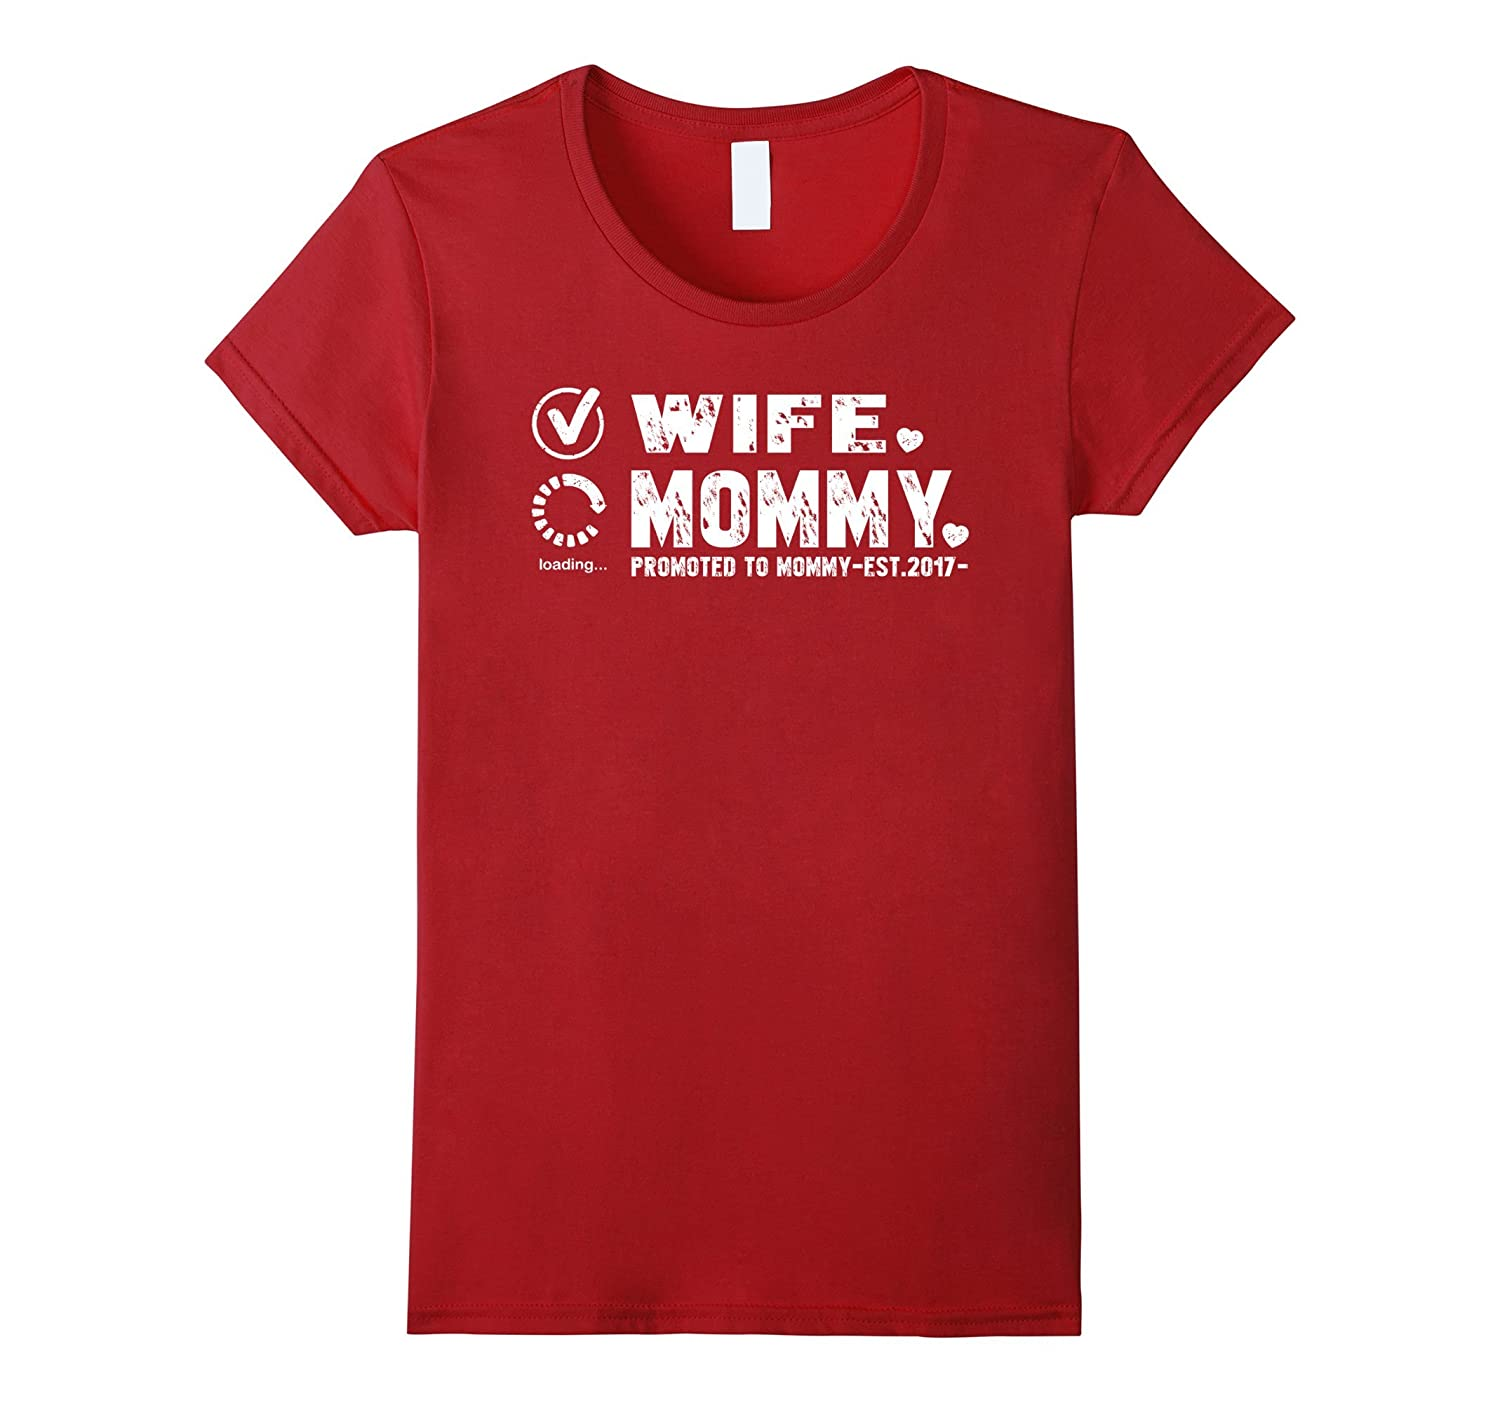 Womens Wife t-shirt promoted to mommy 2017 gift mother's day